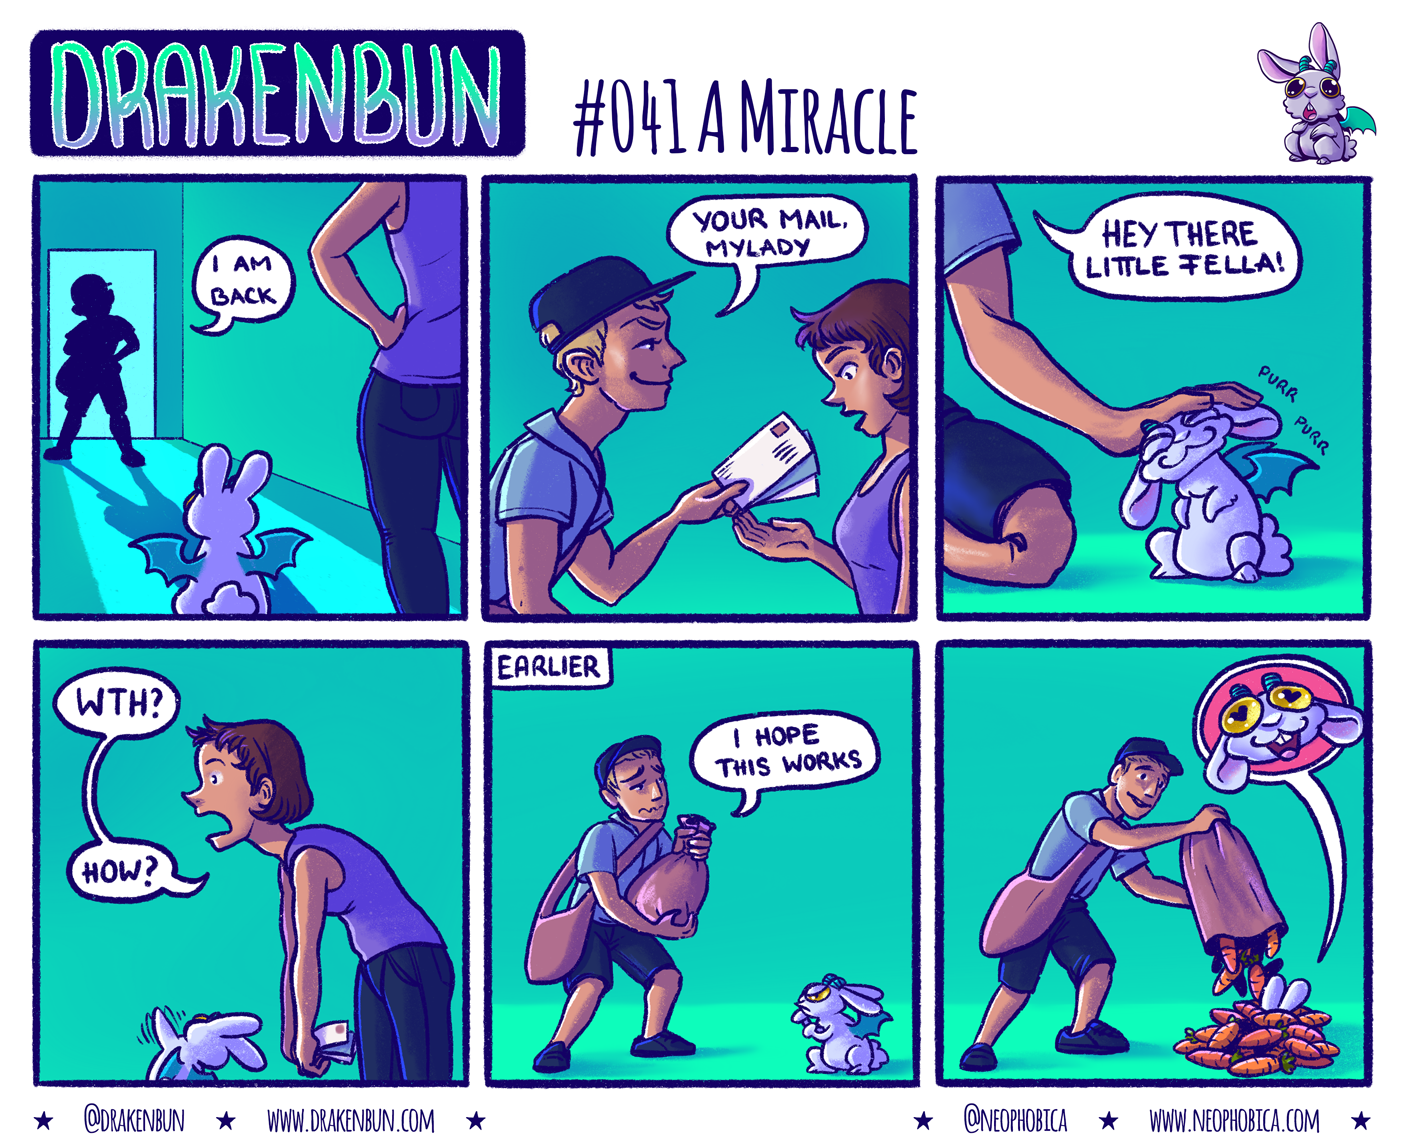 #041 A Miracle